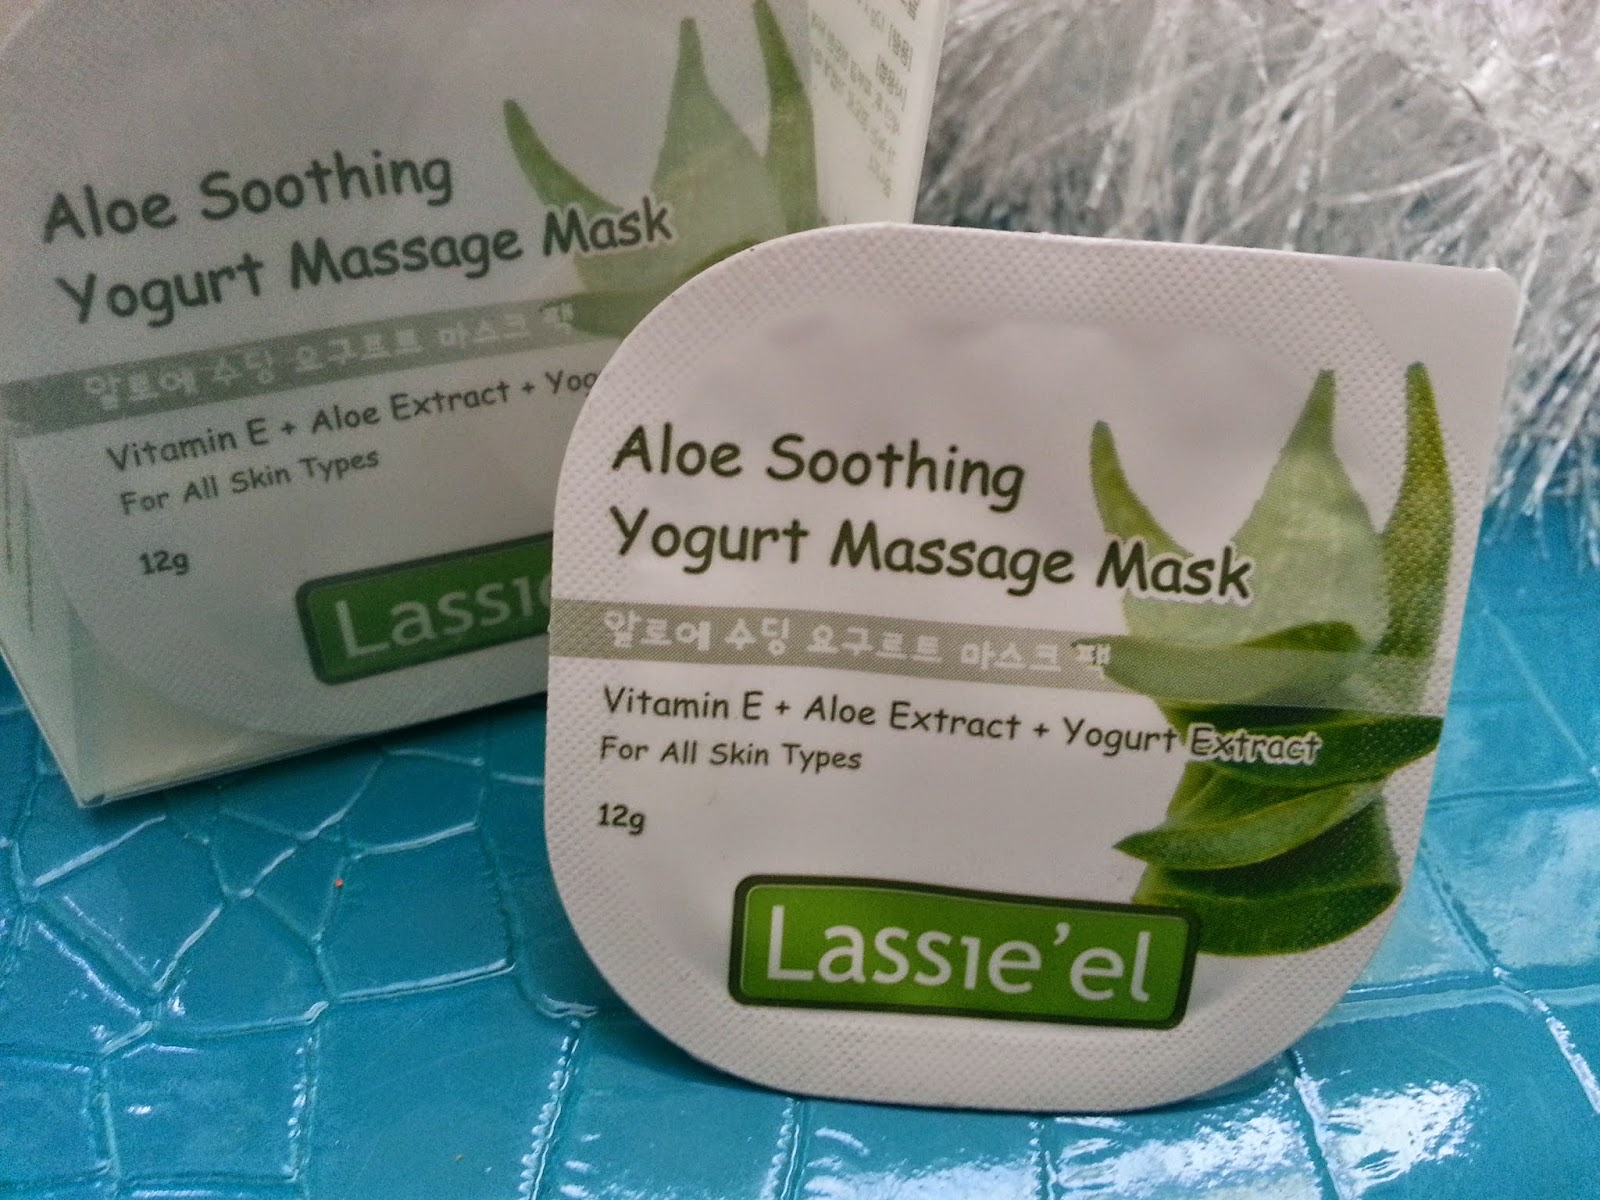 aloe soothing mask, 4 packs close up